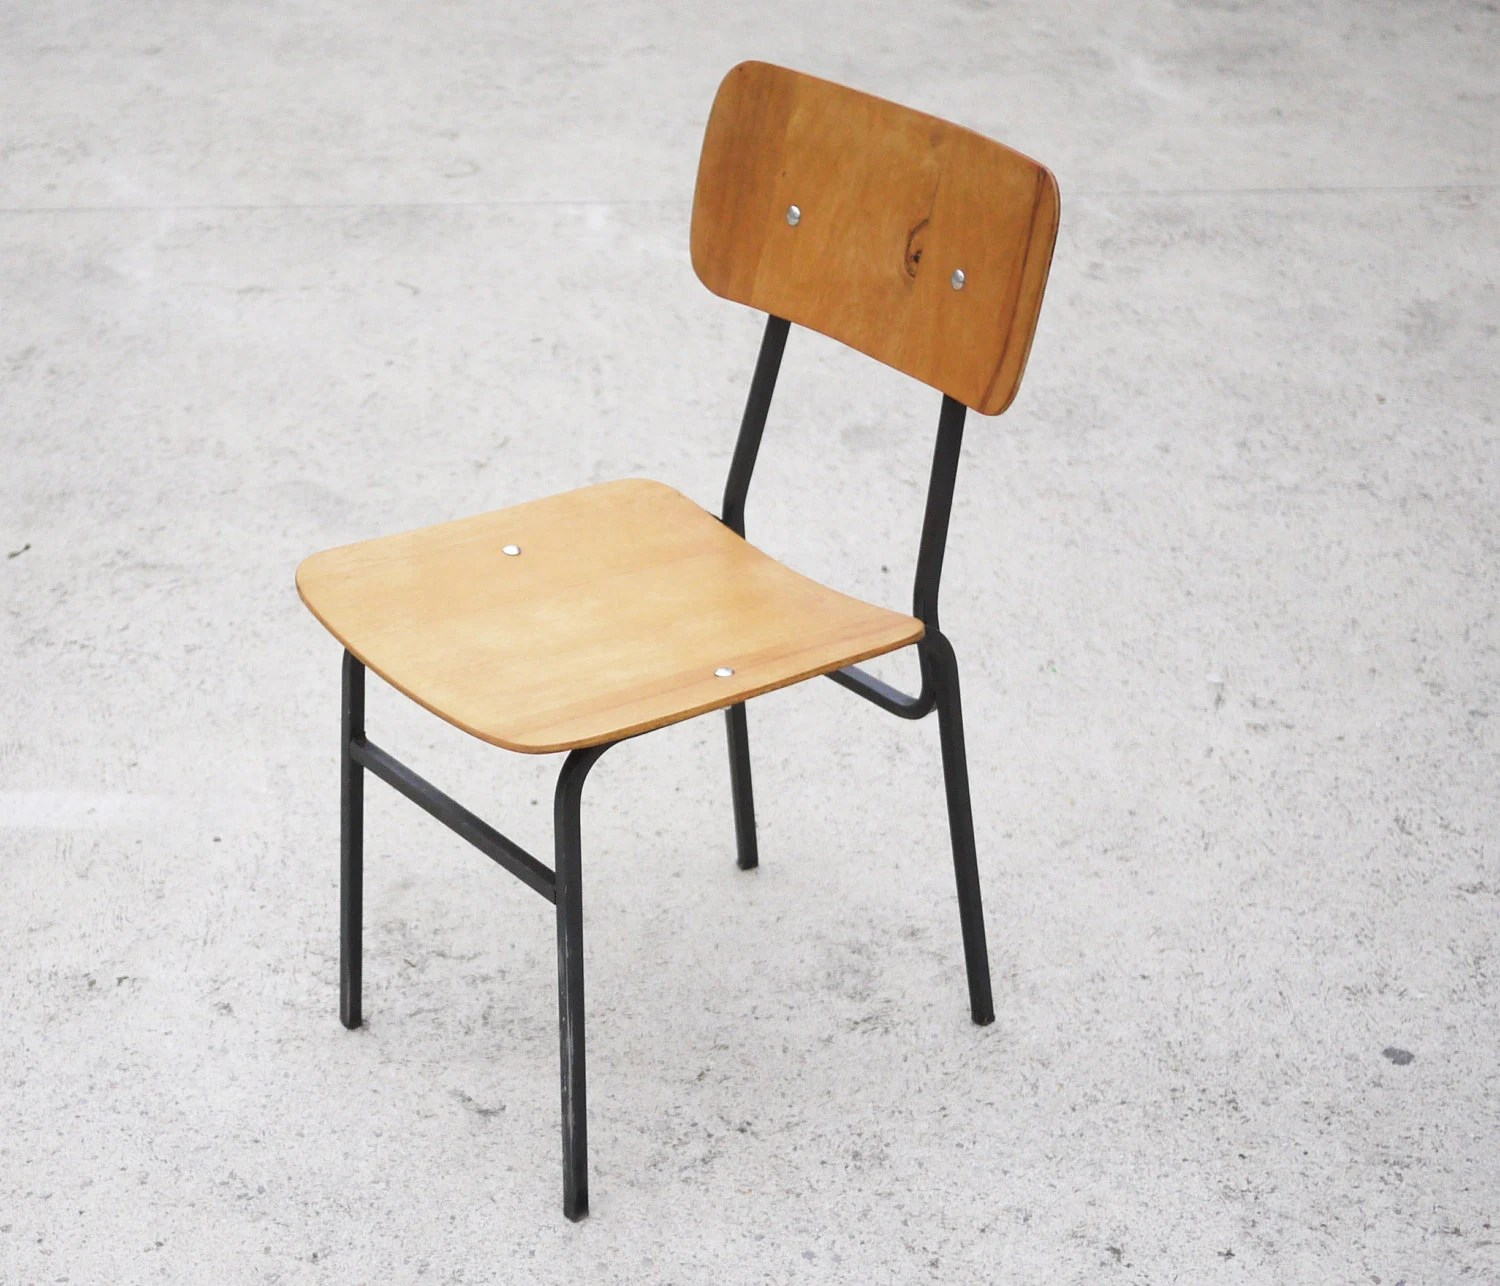 Vintage School Chairs Vintage School Chair Industrial Metal Legs Wax Seat 1960 Mid Century Minimalist Chair Veneer Nostalgia Industrial